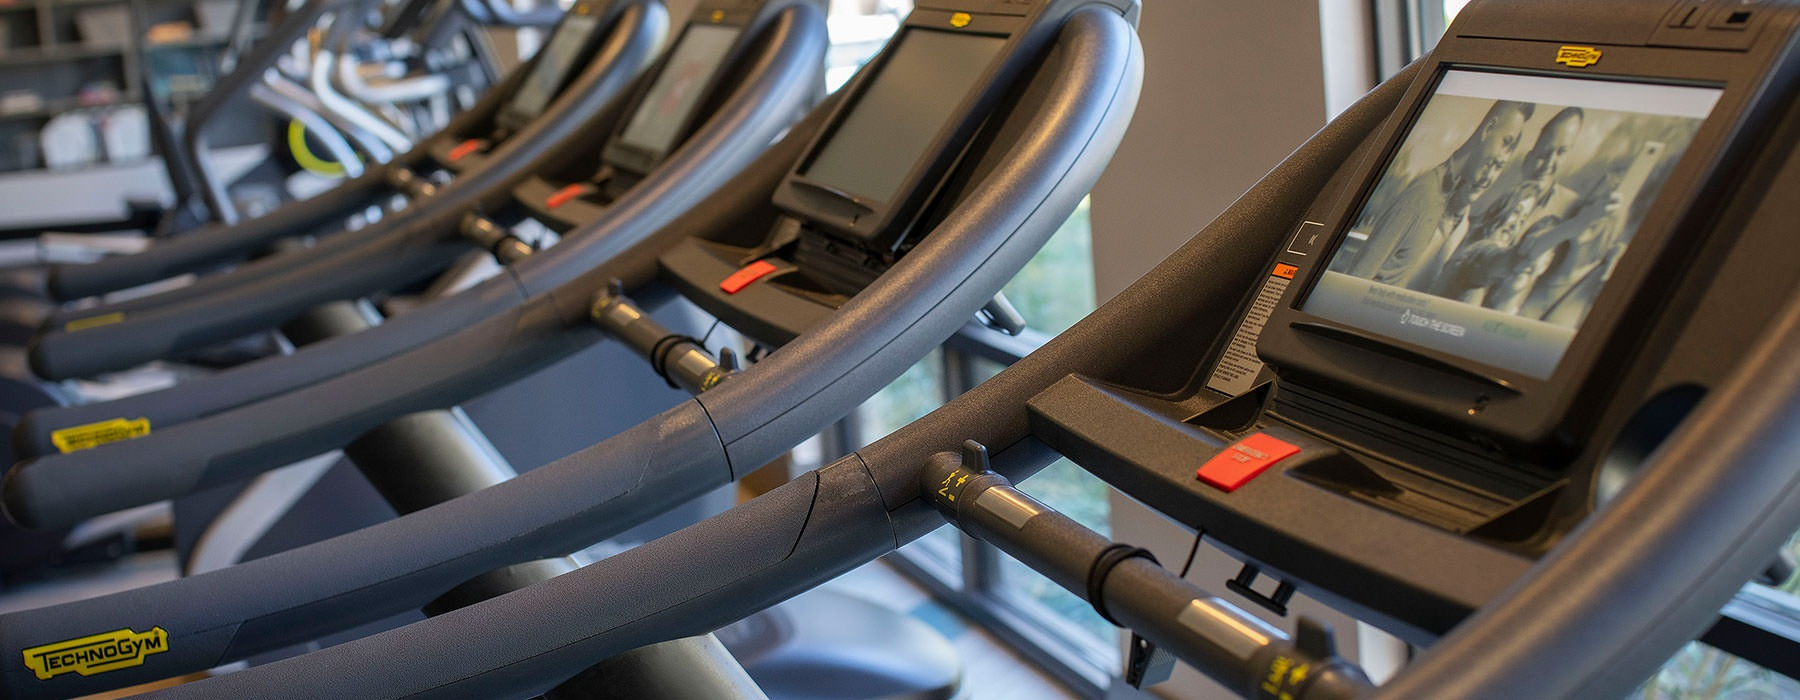 fitness center workout machines